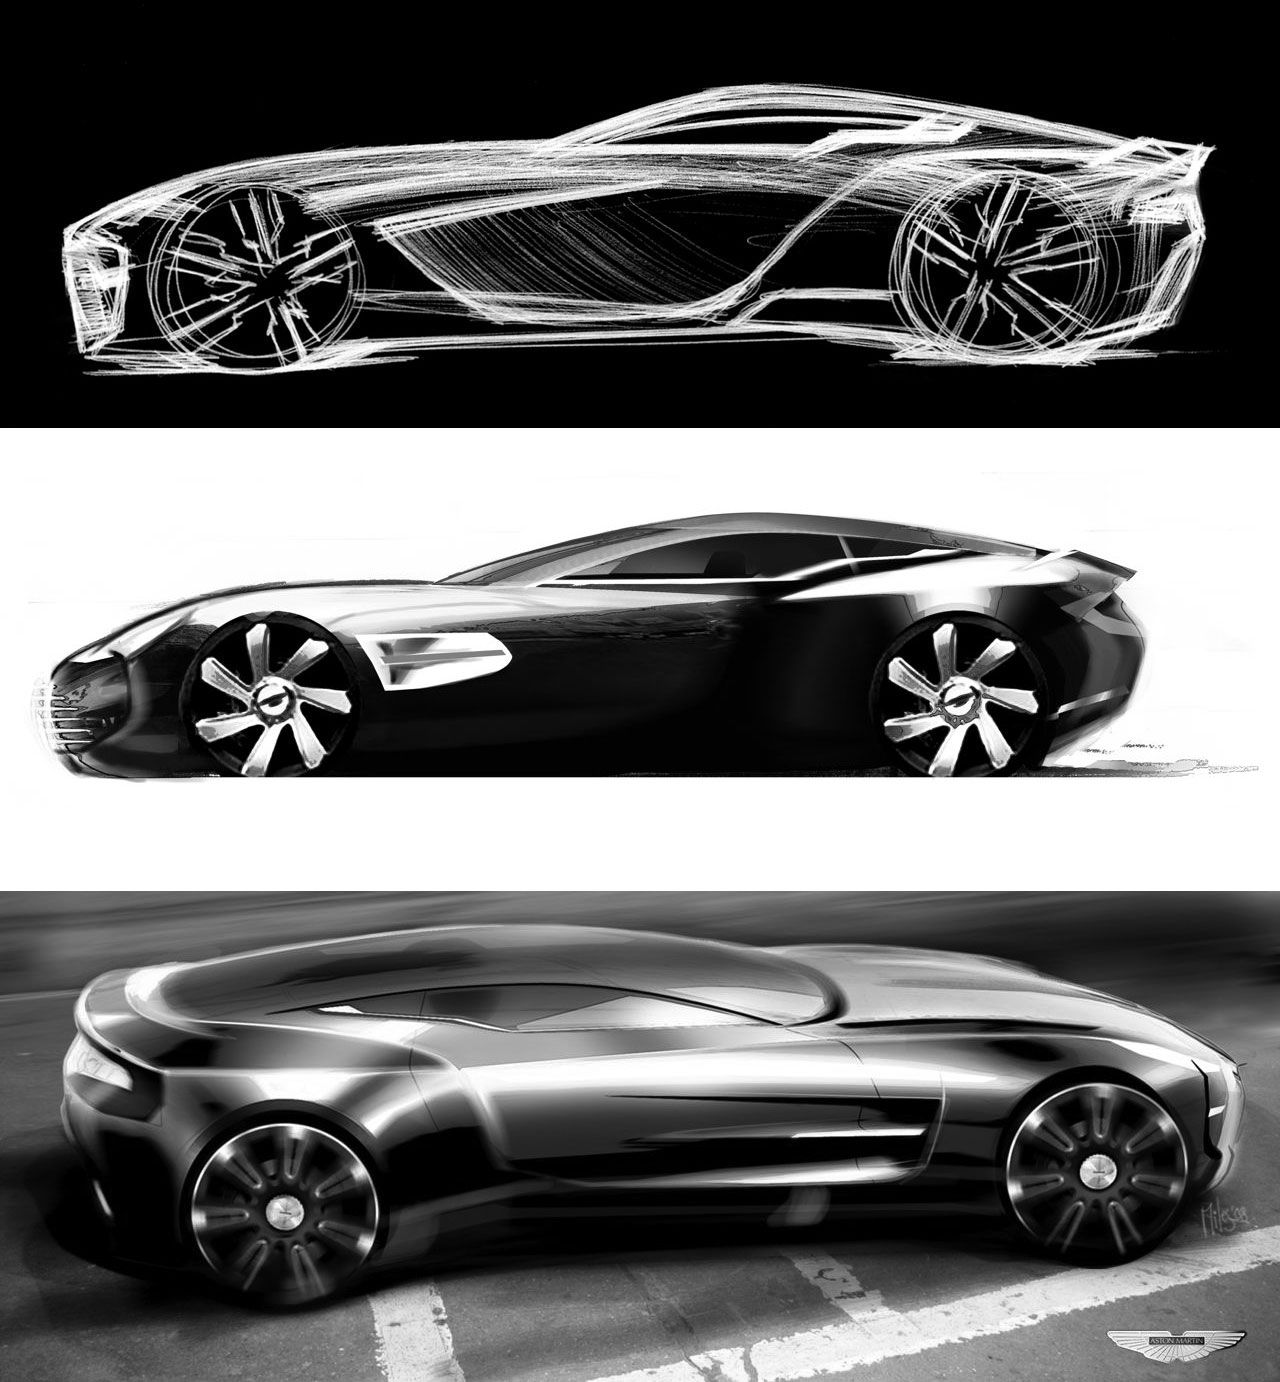 Daily Sketch: Aston Martin One-77 official sketches featured design sketch gallery: